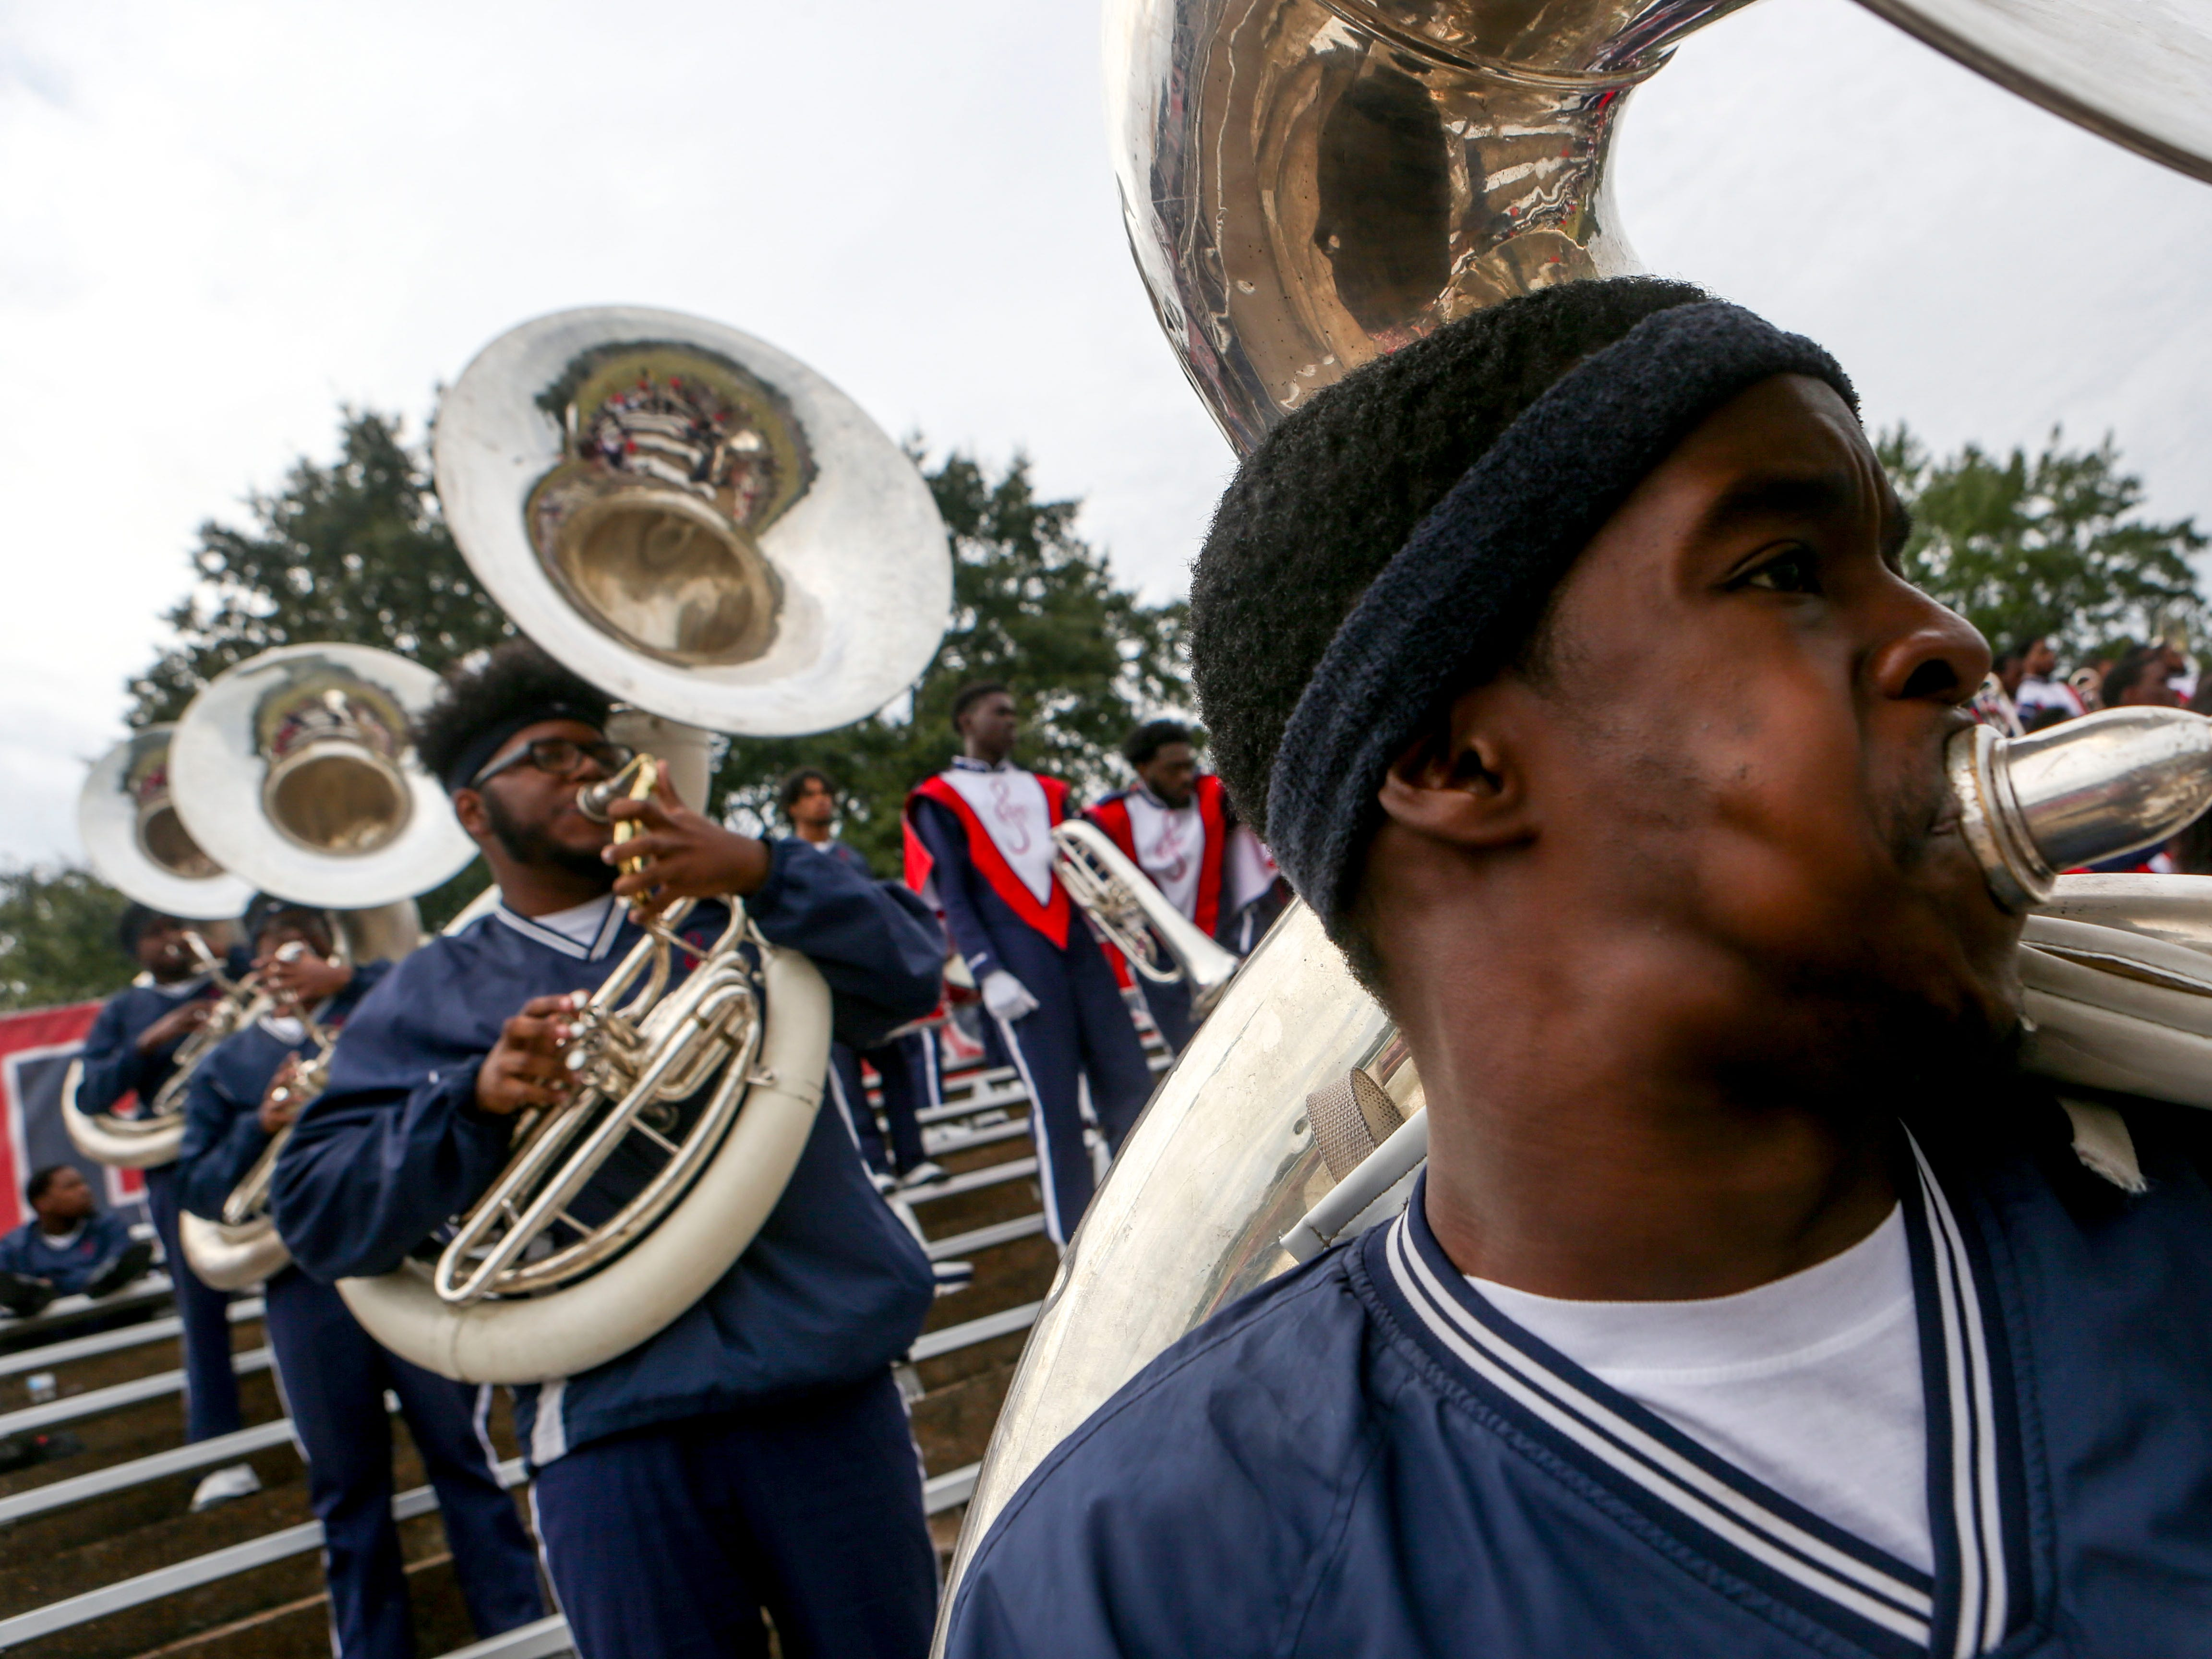 Ezell Miles plays the sousaphone during a fight song at T.R. White Sportsplex in Jackson, Tenn., on Saturday, Oct. 13, 2018.